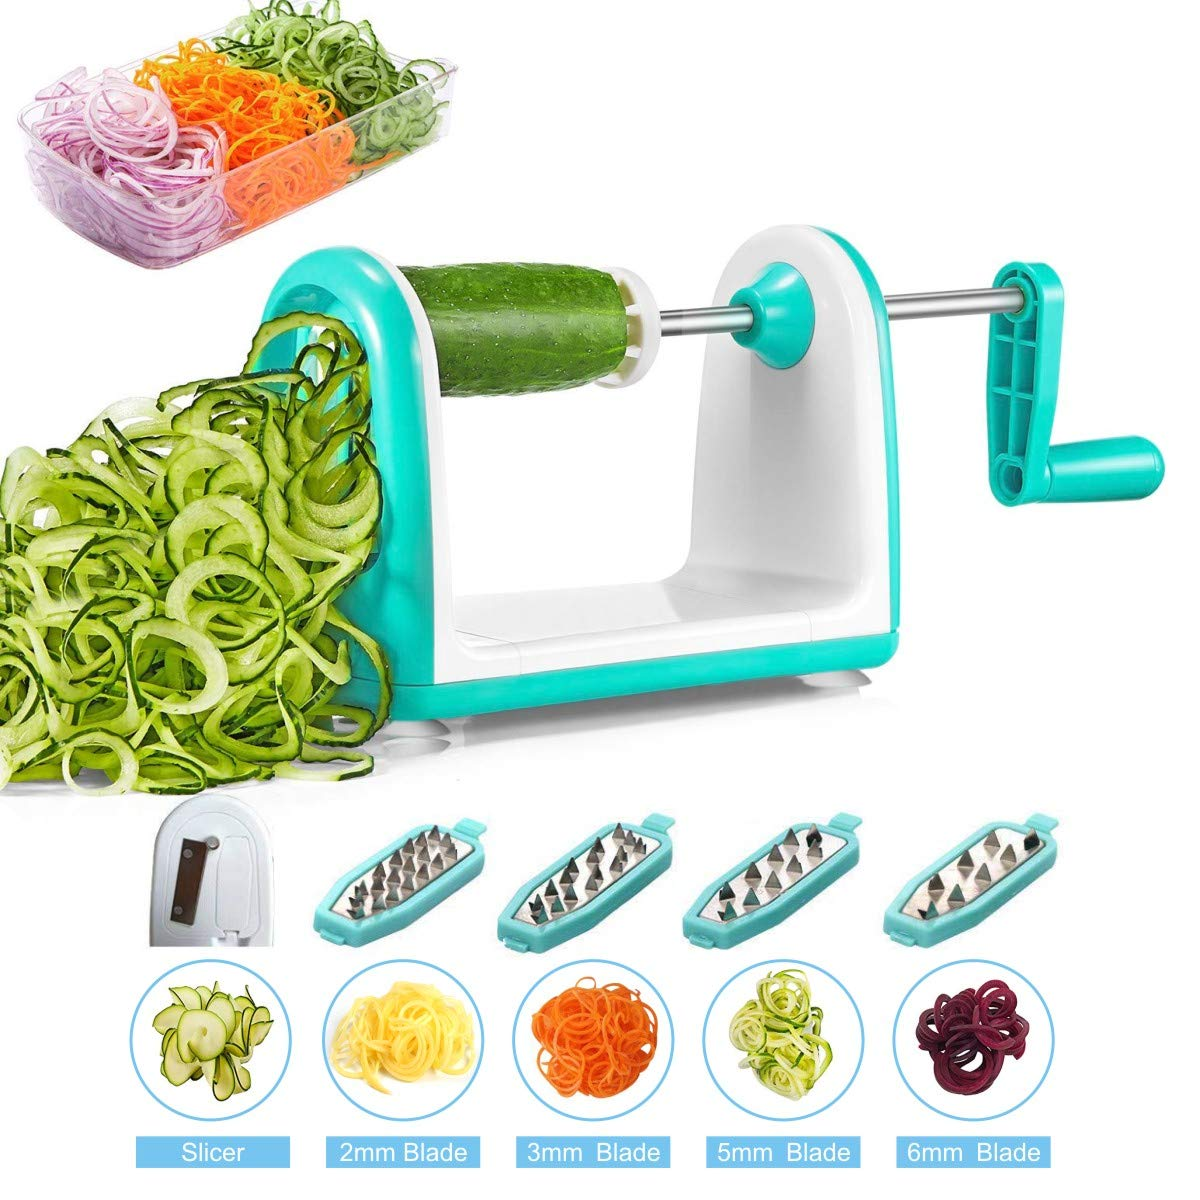 Vegetable Spiralizer, Vegetable Slicer, iNeibo 5-Blade Spiral Slicer Spaghetti Maker with Free Cleaning Brush and Anti-Slip Sucker for Zucchini Noodles,Pasta etc